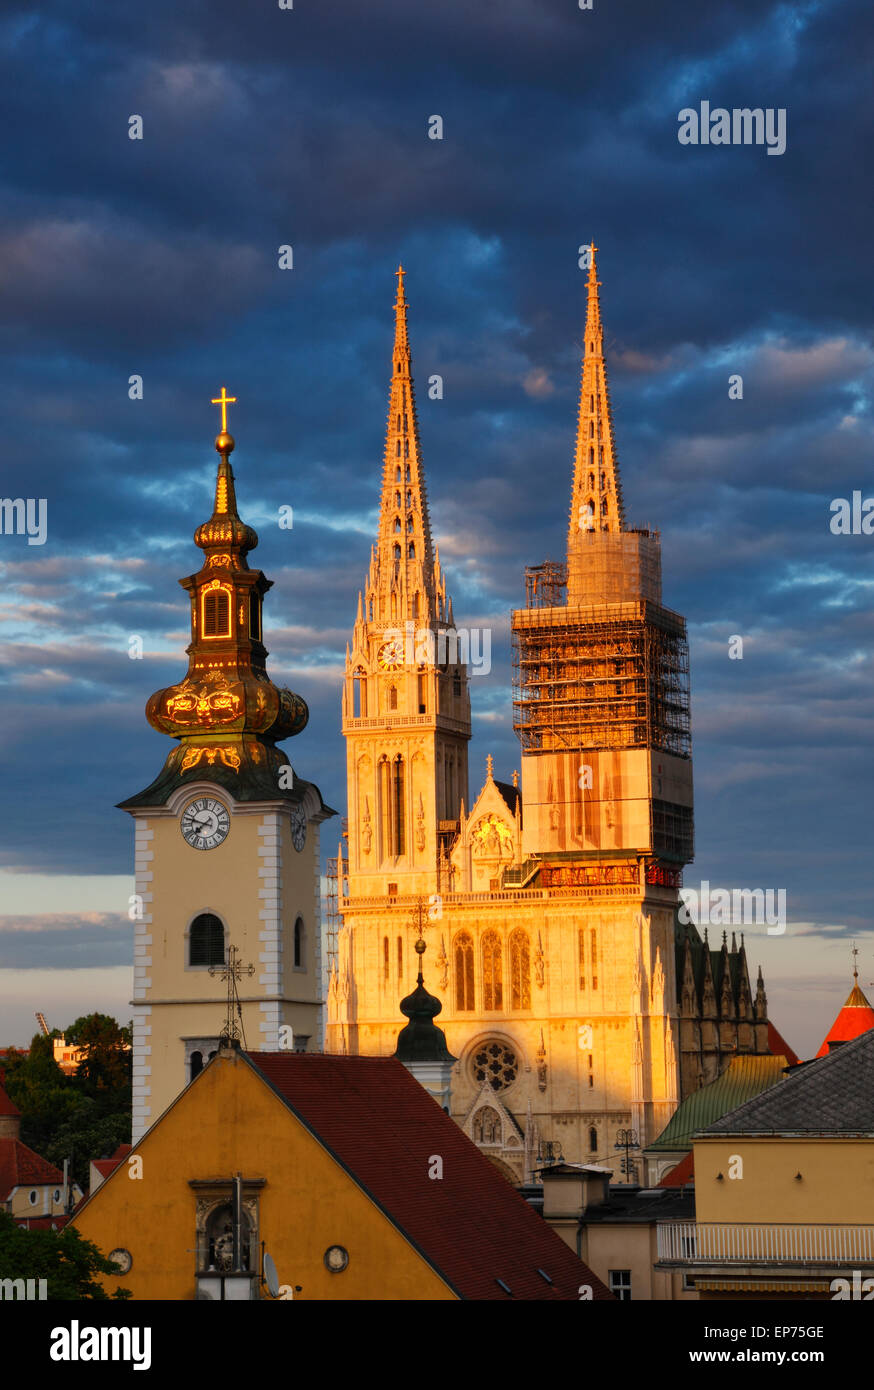 Zagreb Cathedral at sunset with beautiful clouds - Stock Image